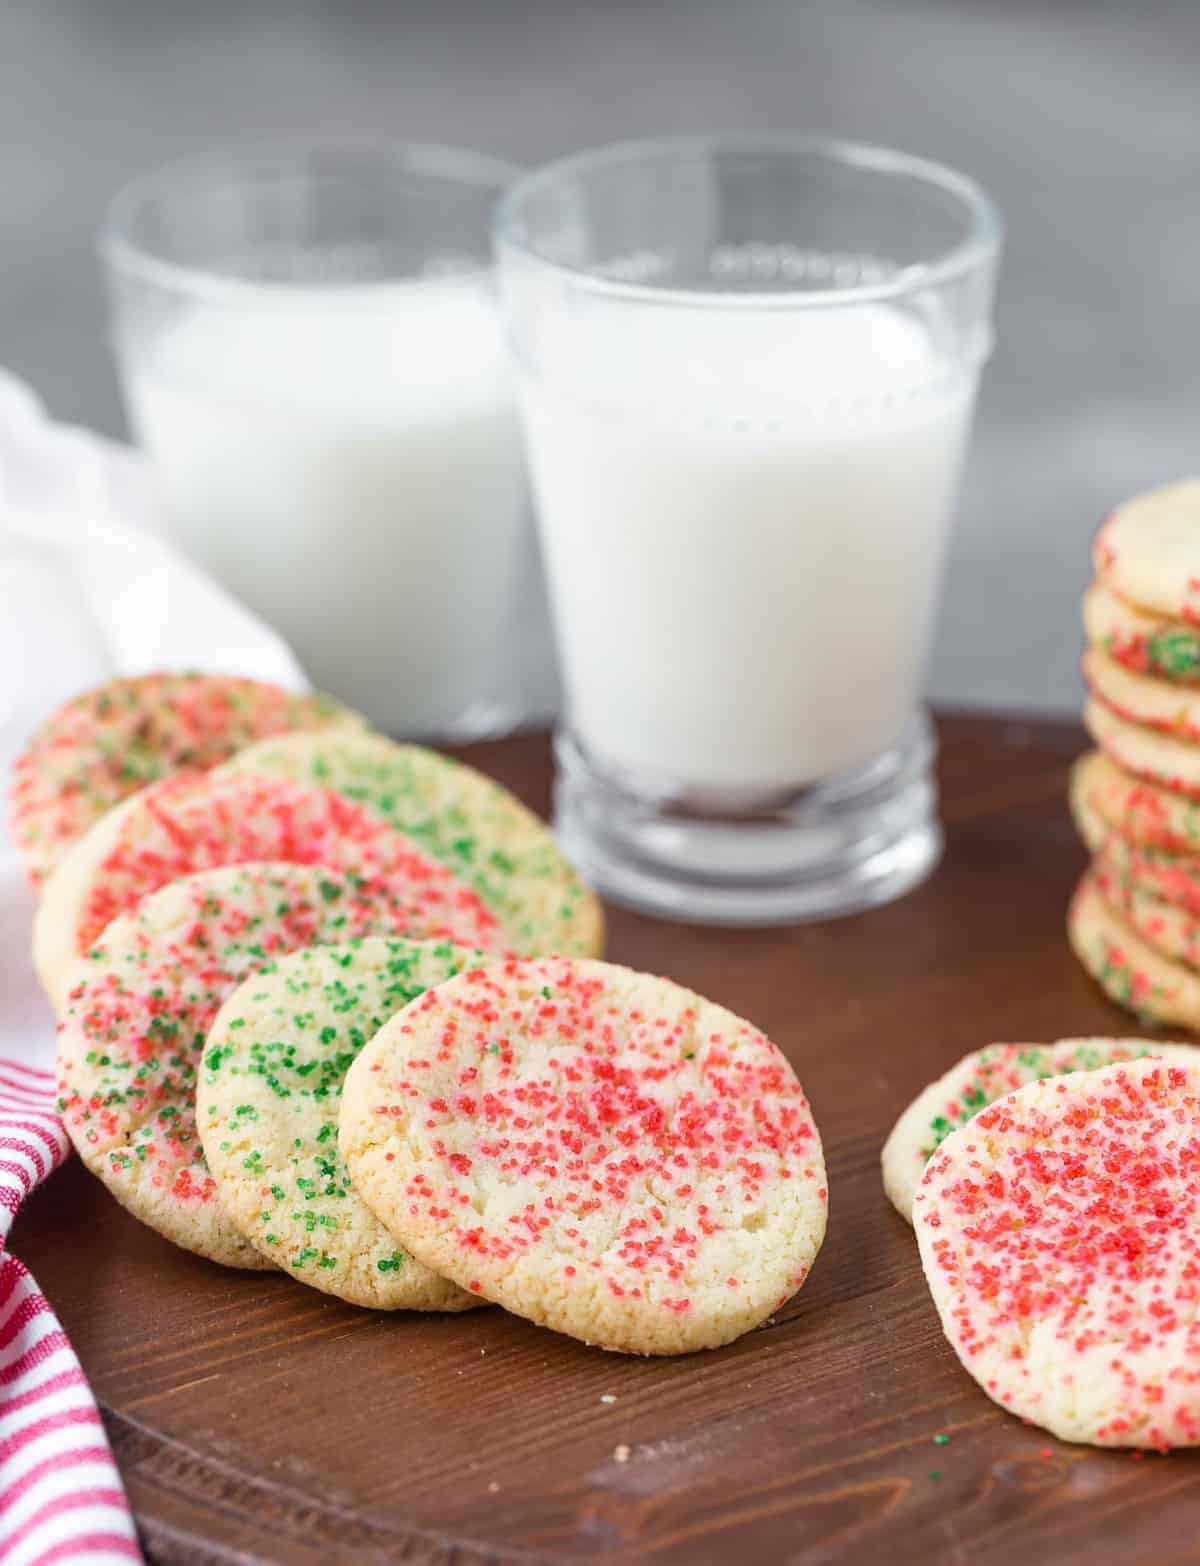 Cookies decorated with red and green sugar, milk in background.